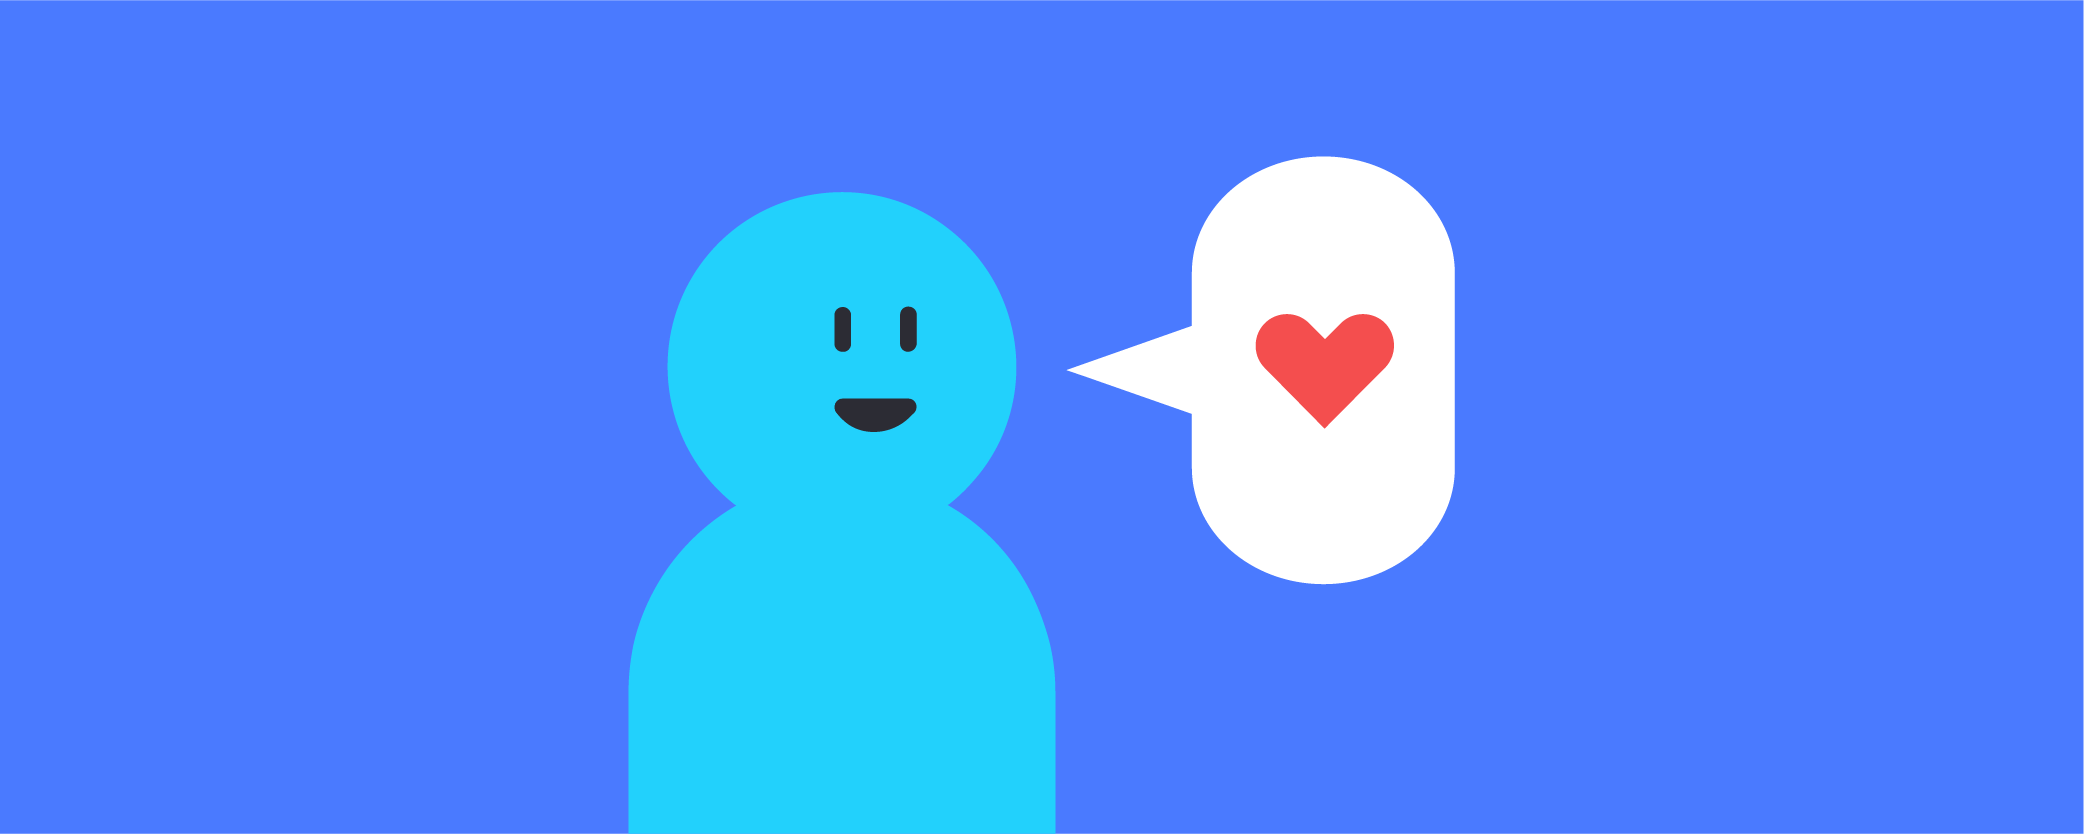 A person with a heart speech bubble